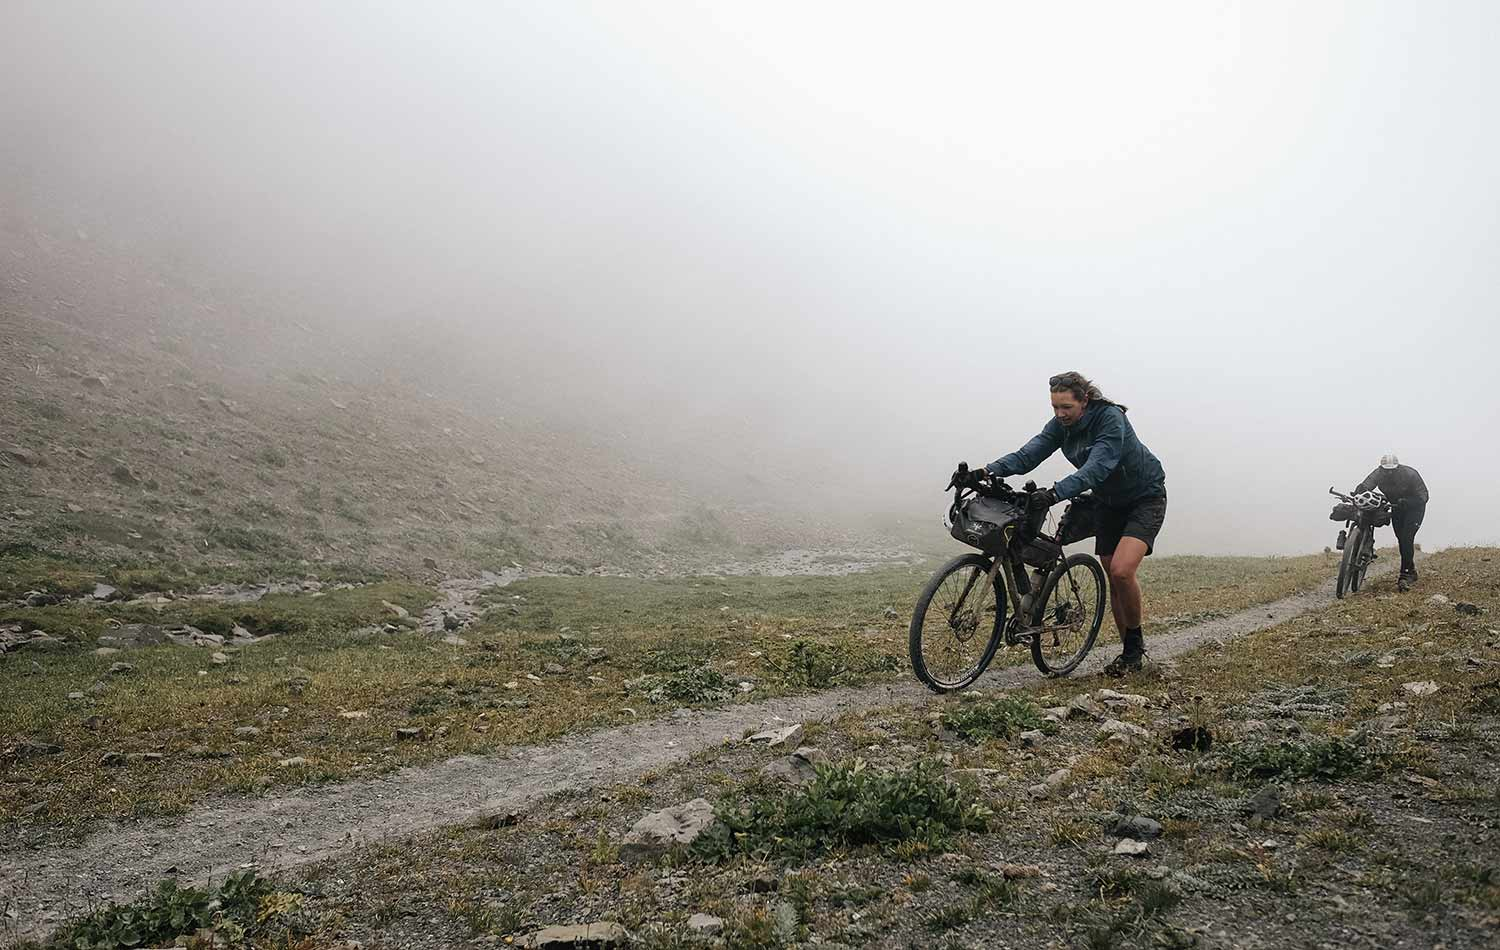 Jenny Tough and her friend cycling on the Silk Road Mountain Race | Apidura